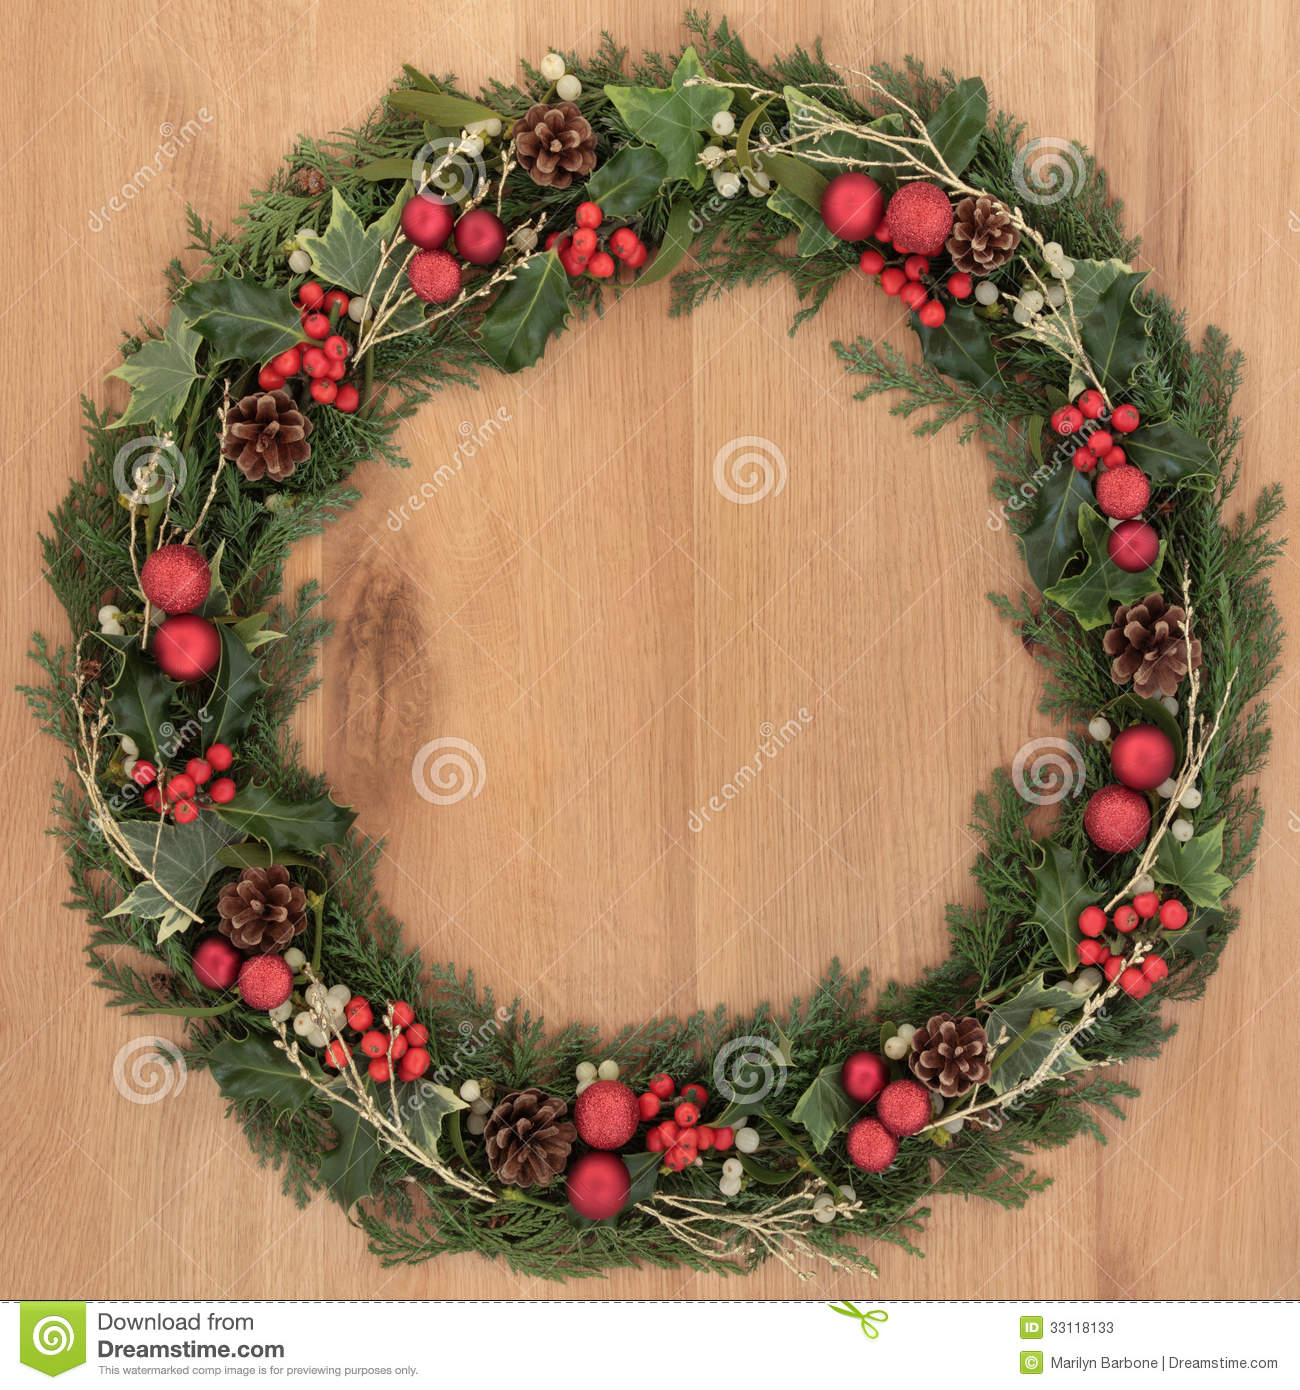 christmas wreath with red bauble decorations holly mistletoe ivy pine cones and cedar over oak background